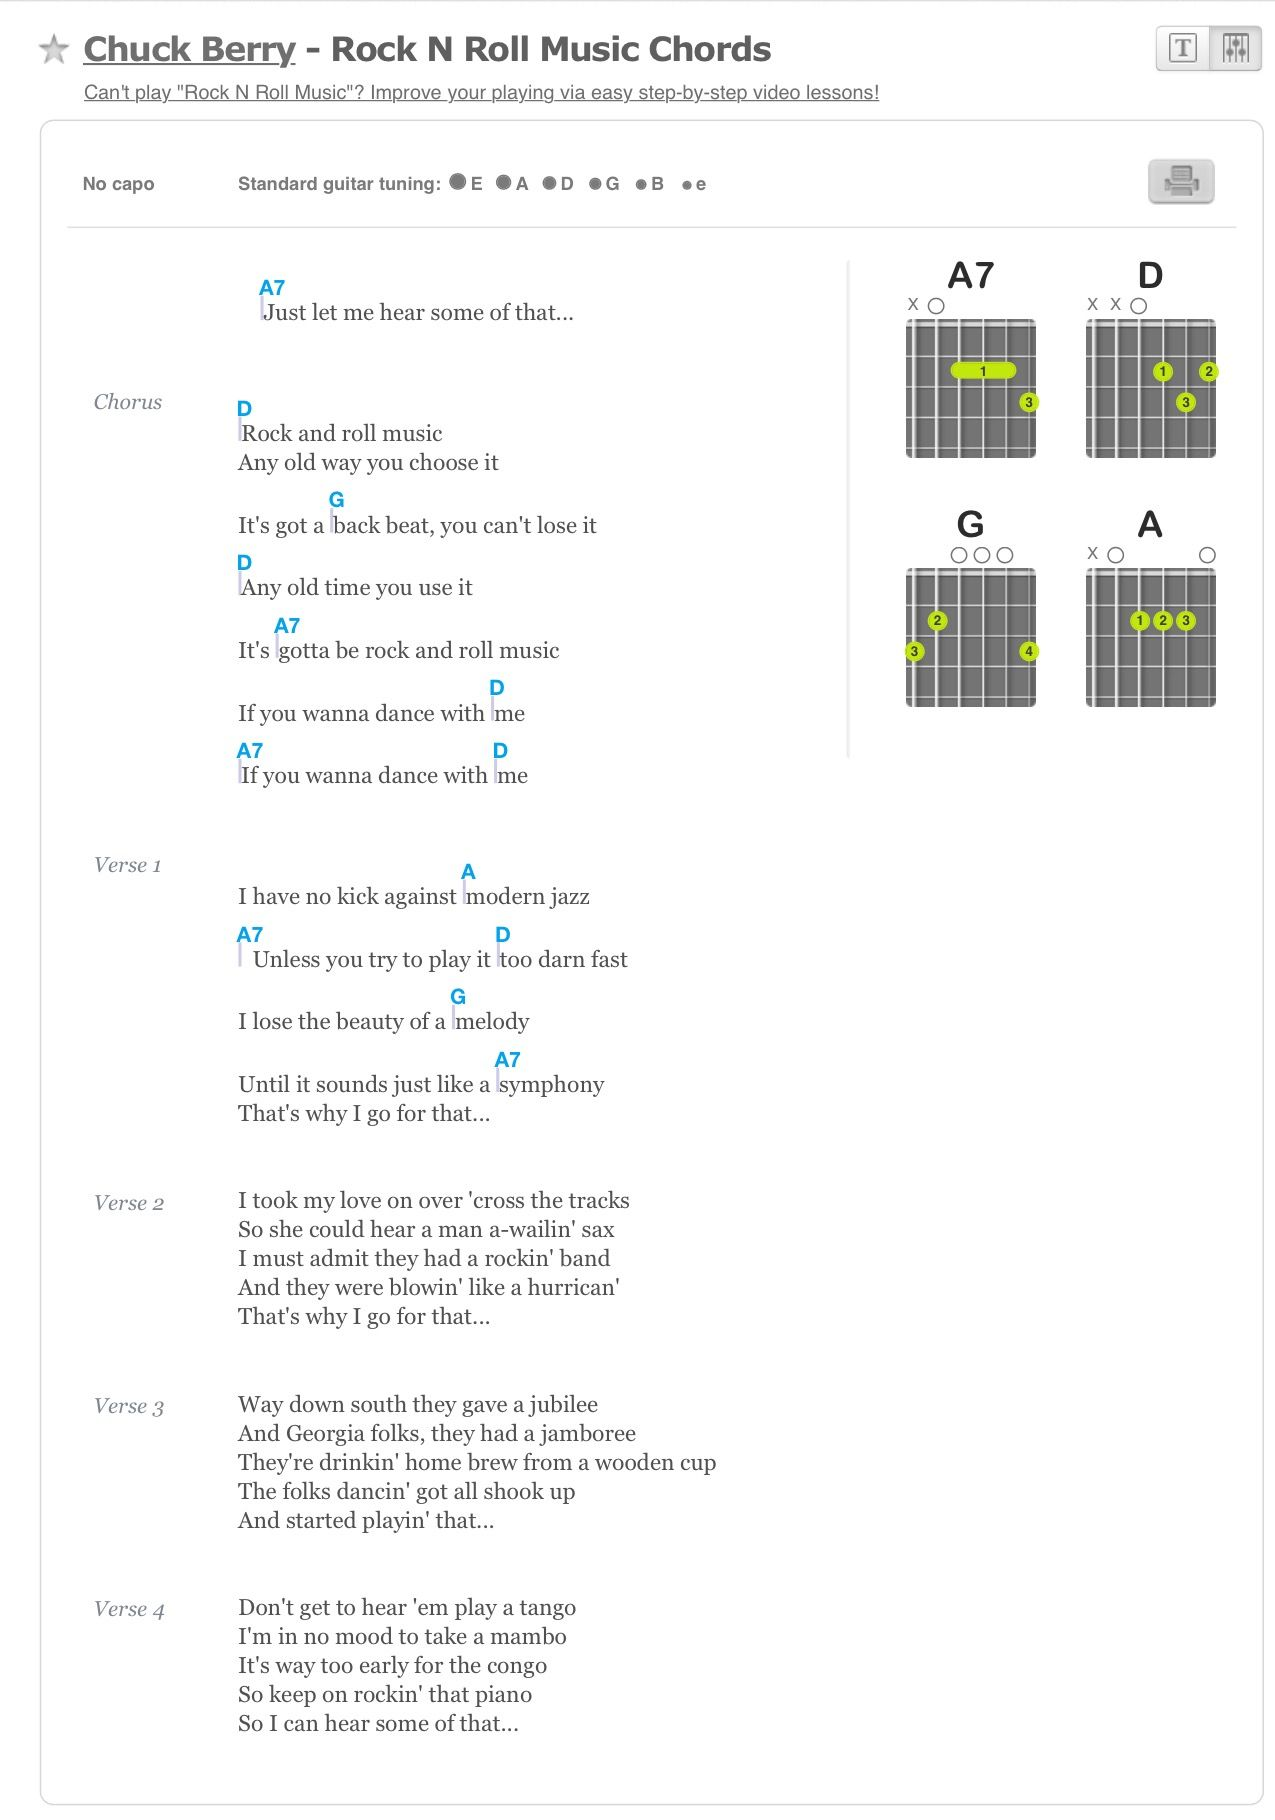 Pin By J Gifford On Music Ukelele Songs Music Chords Lyrics And Chords